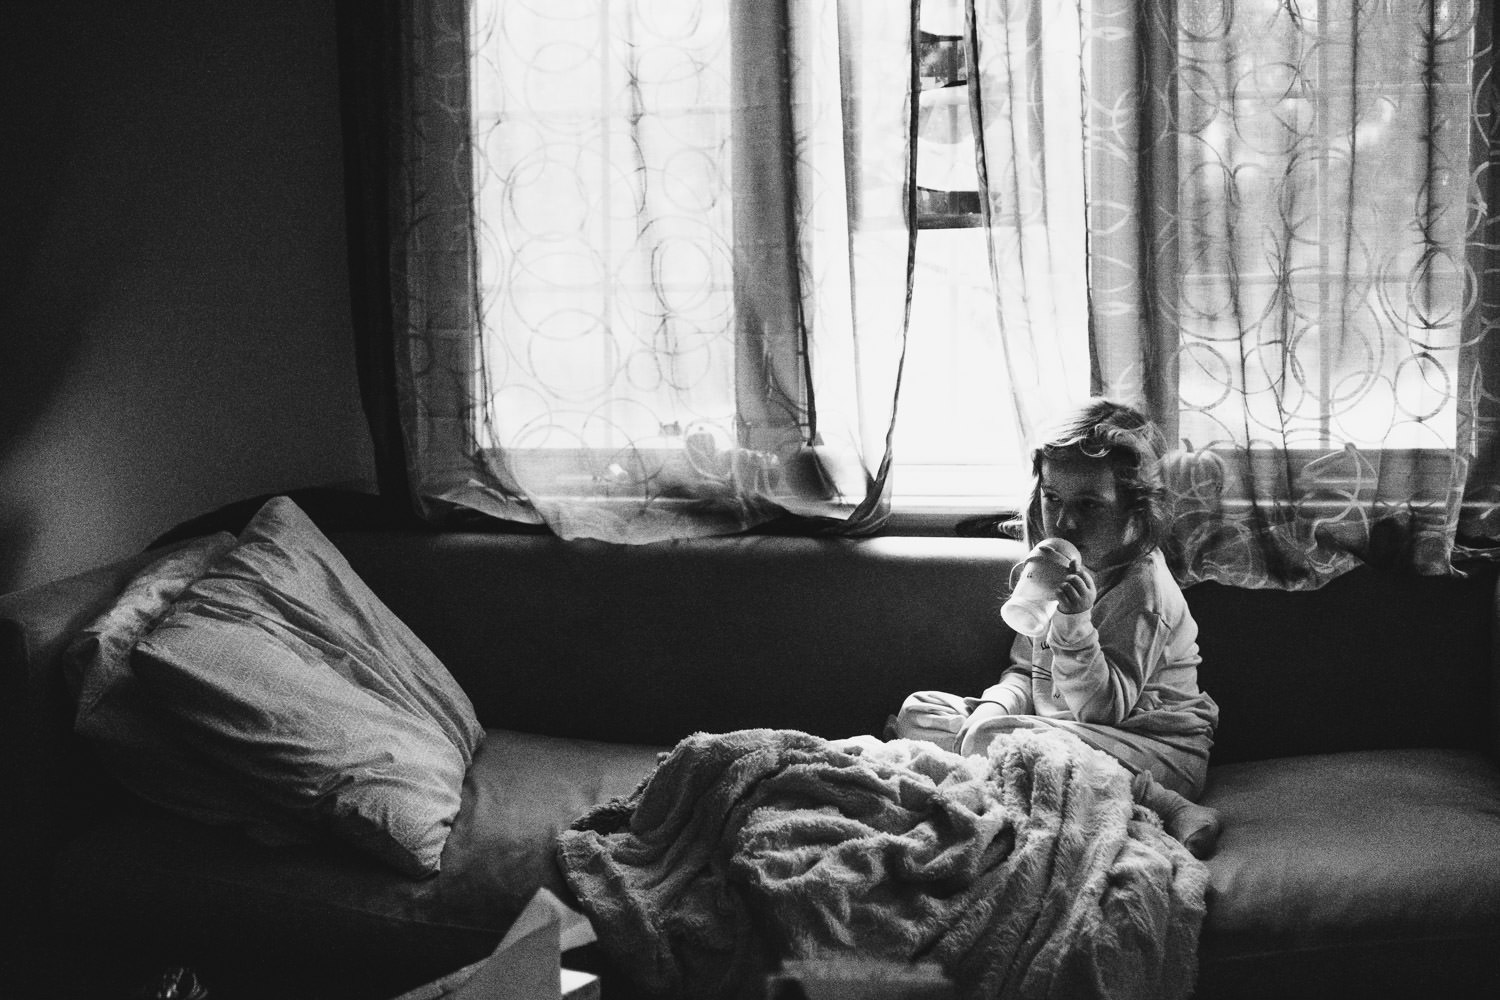 A little girl sits with a blanket on the couch.